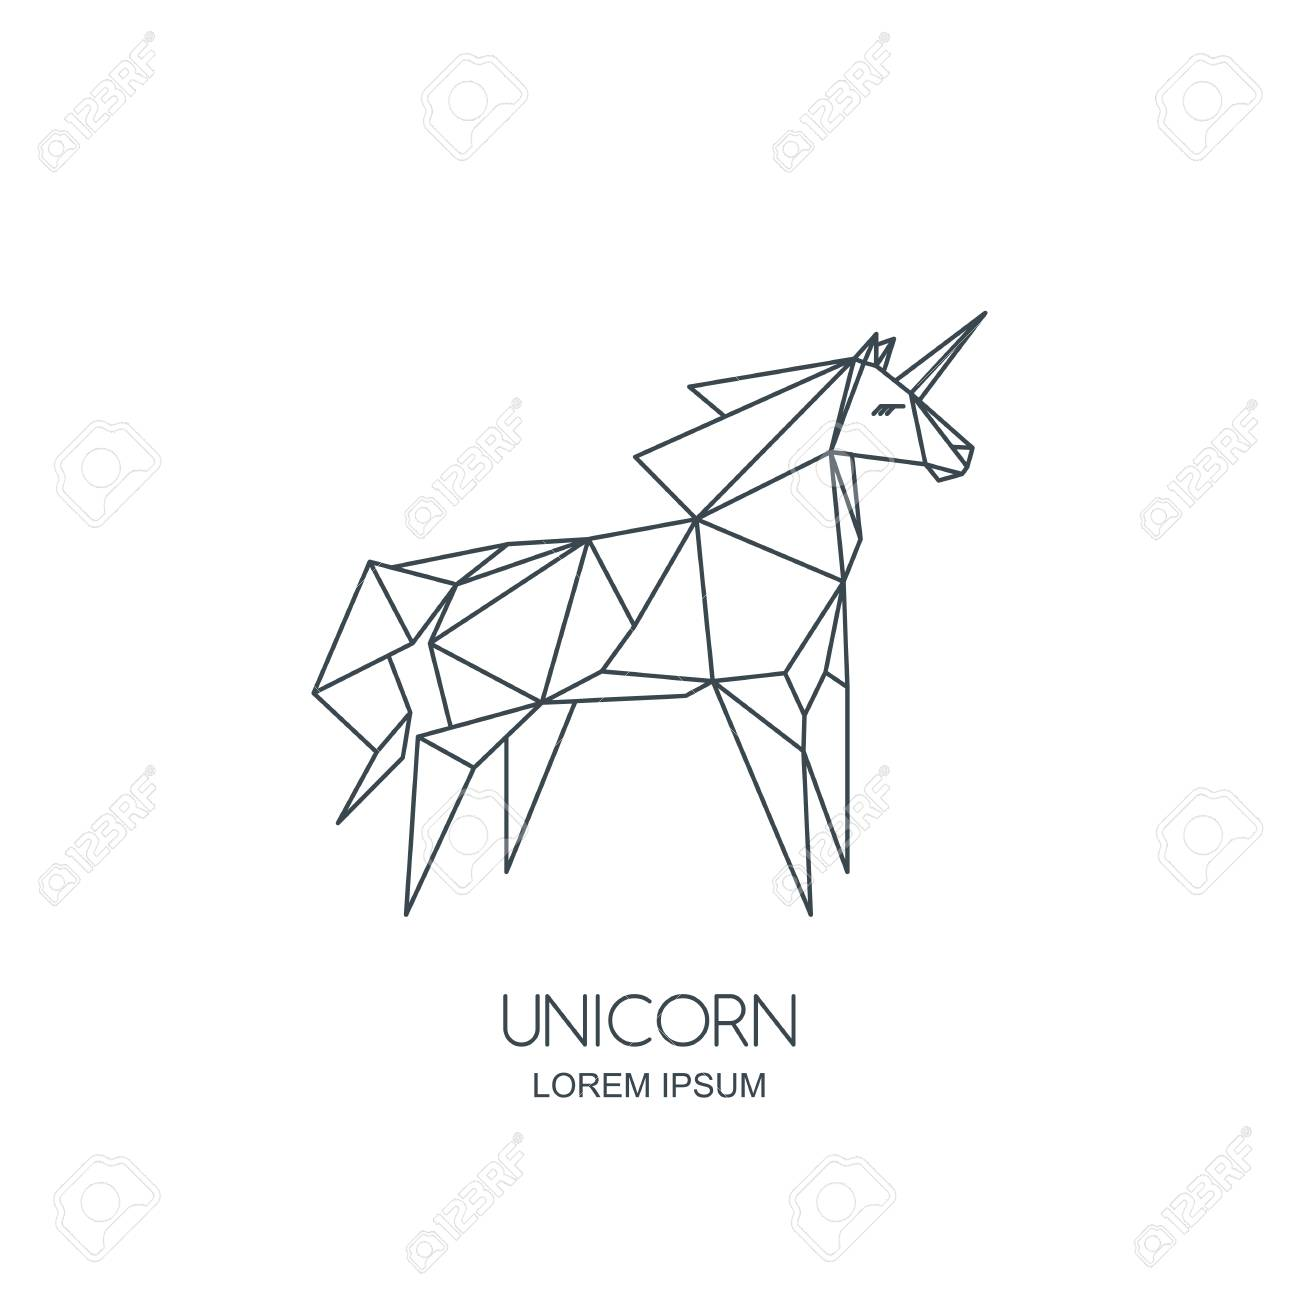 Vector Line Art Unicorn Horse Logo Icon Or Emblem Outline Geometric Royalty Free Cliparts Vectors And Stock Illustration Image 89823138